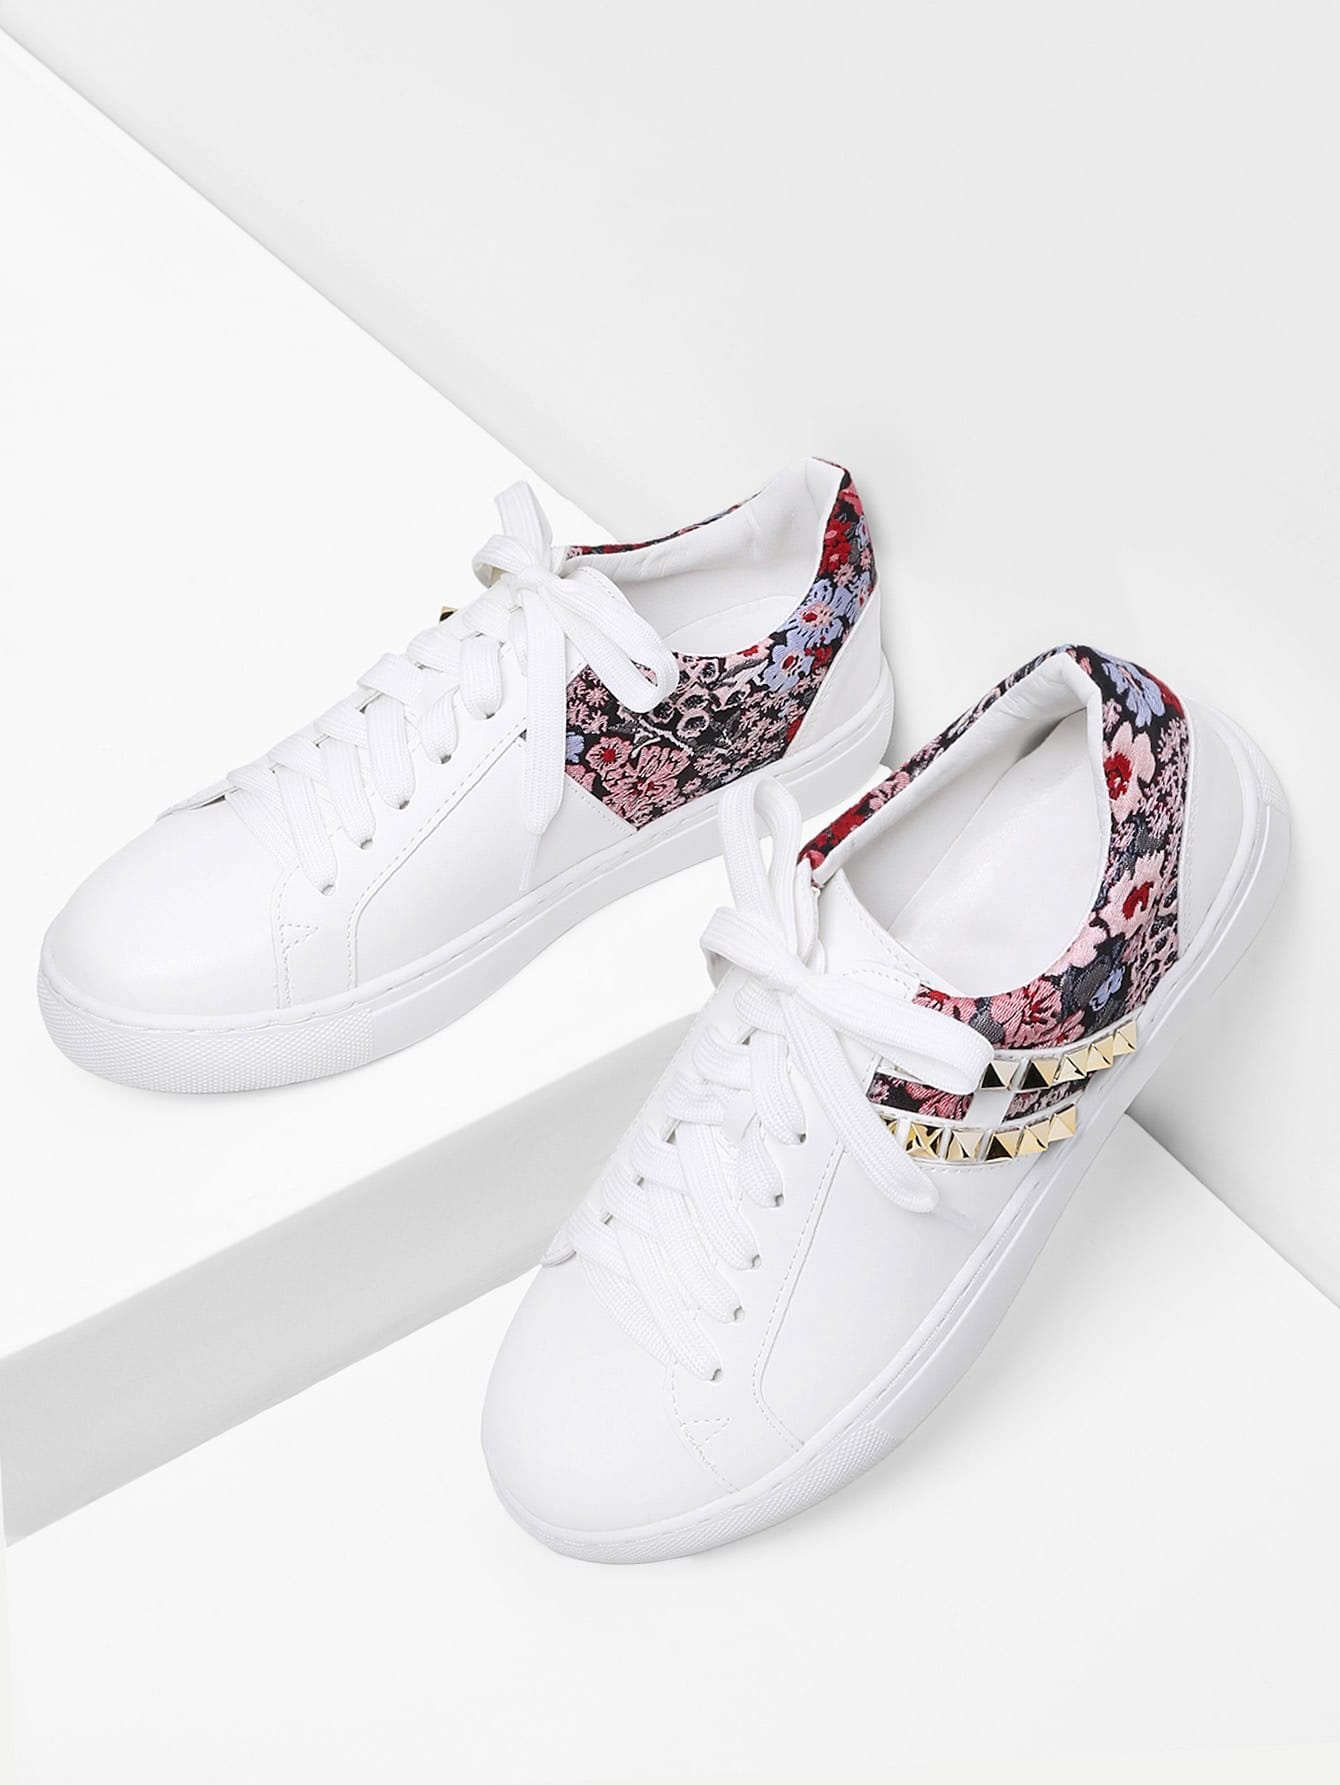 Image of Calico Pattern PU Sneakers With Studded